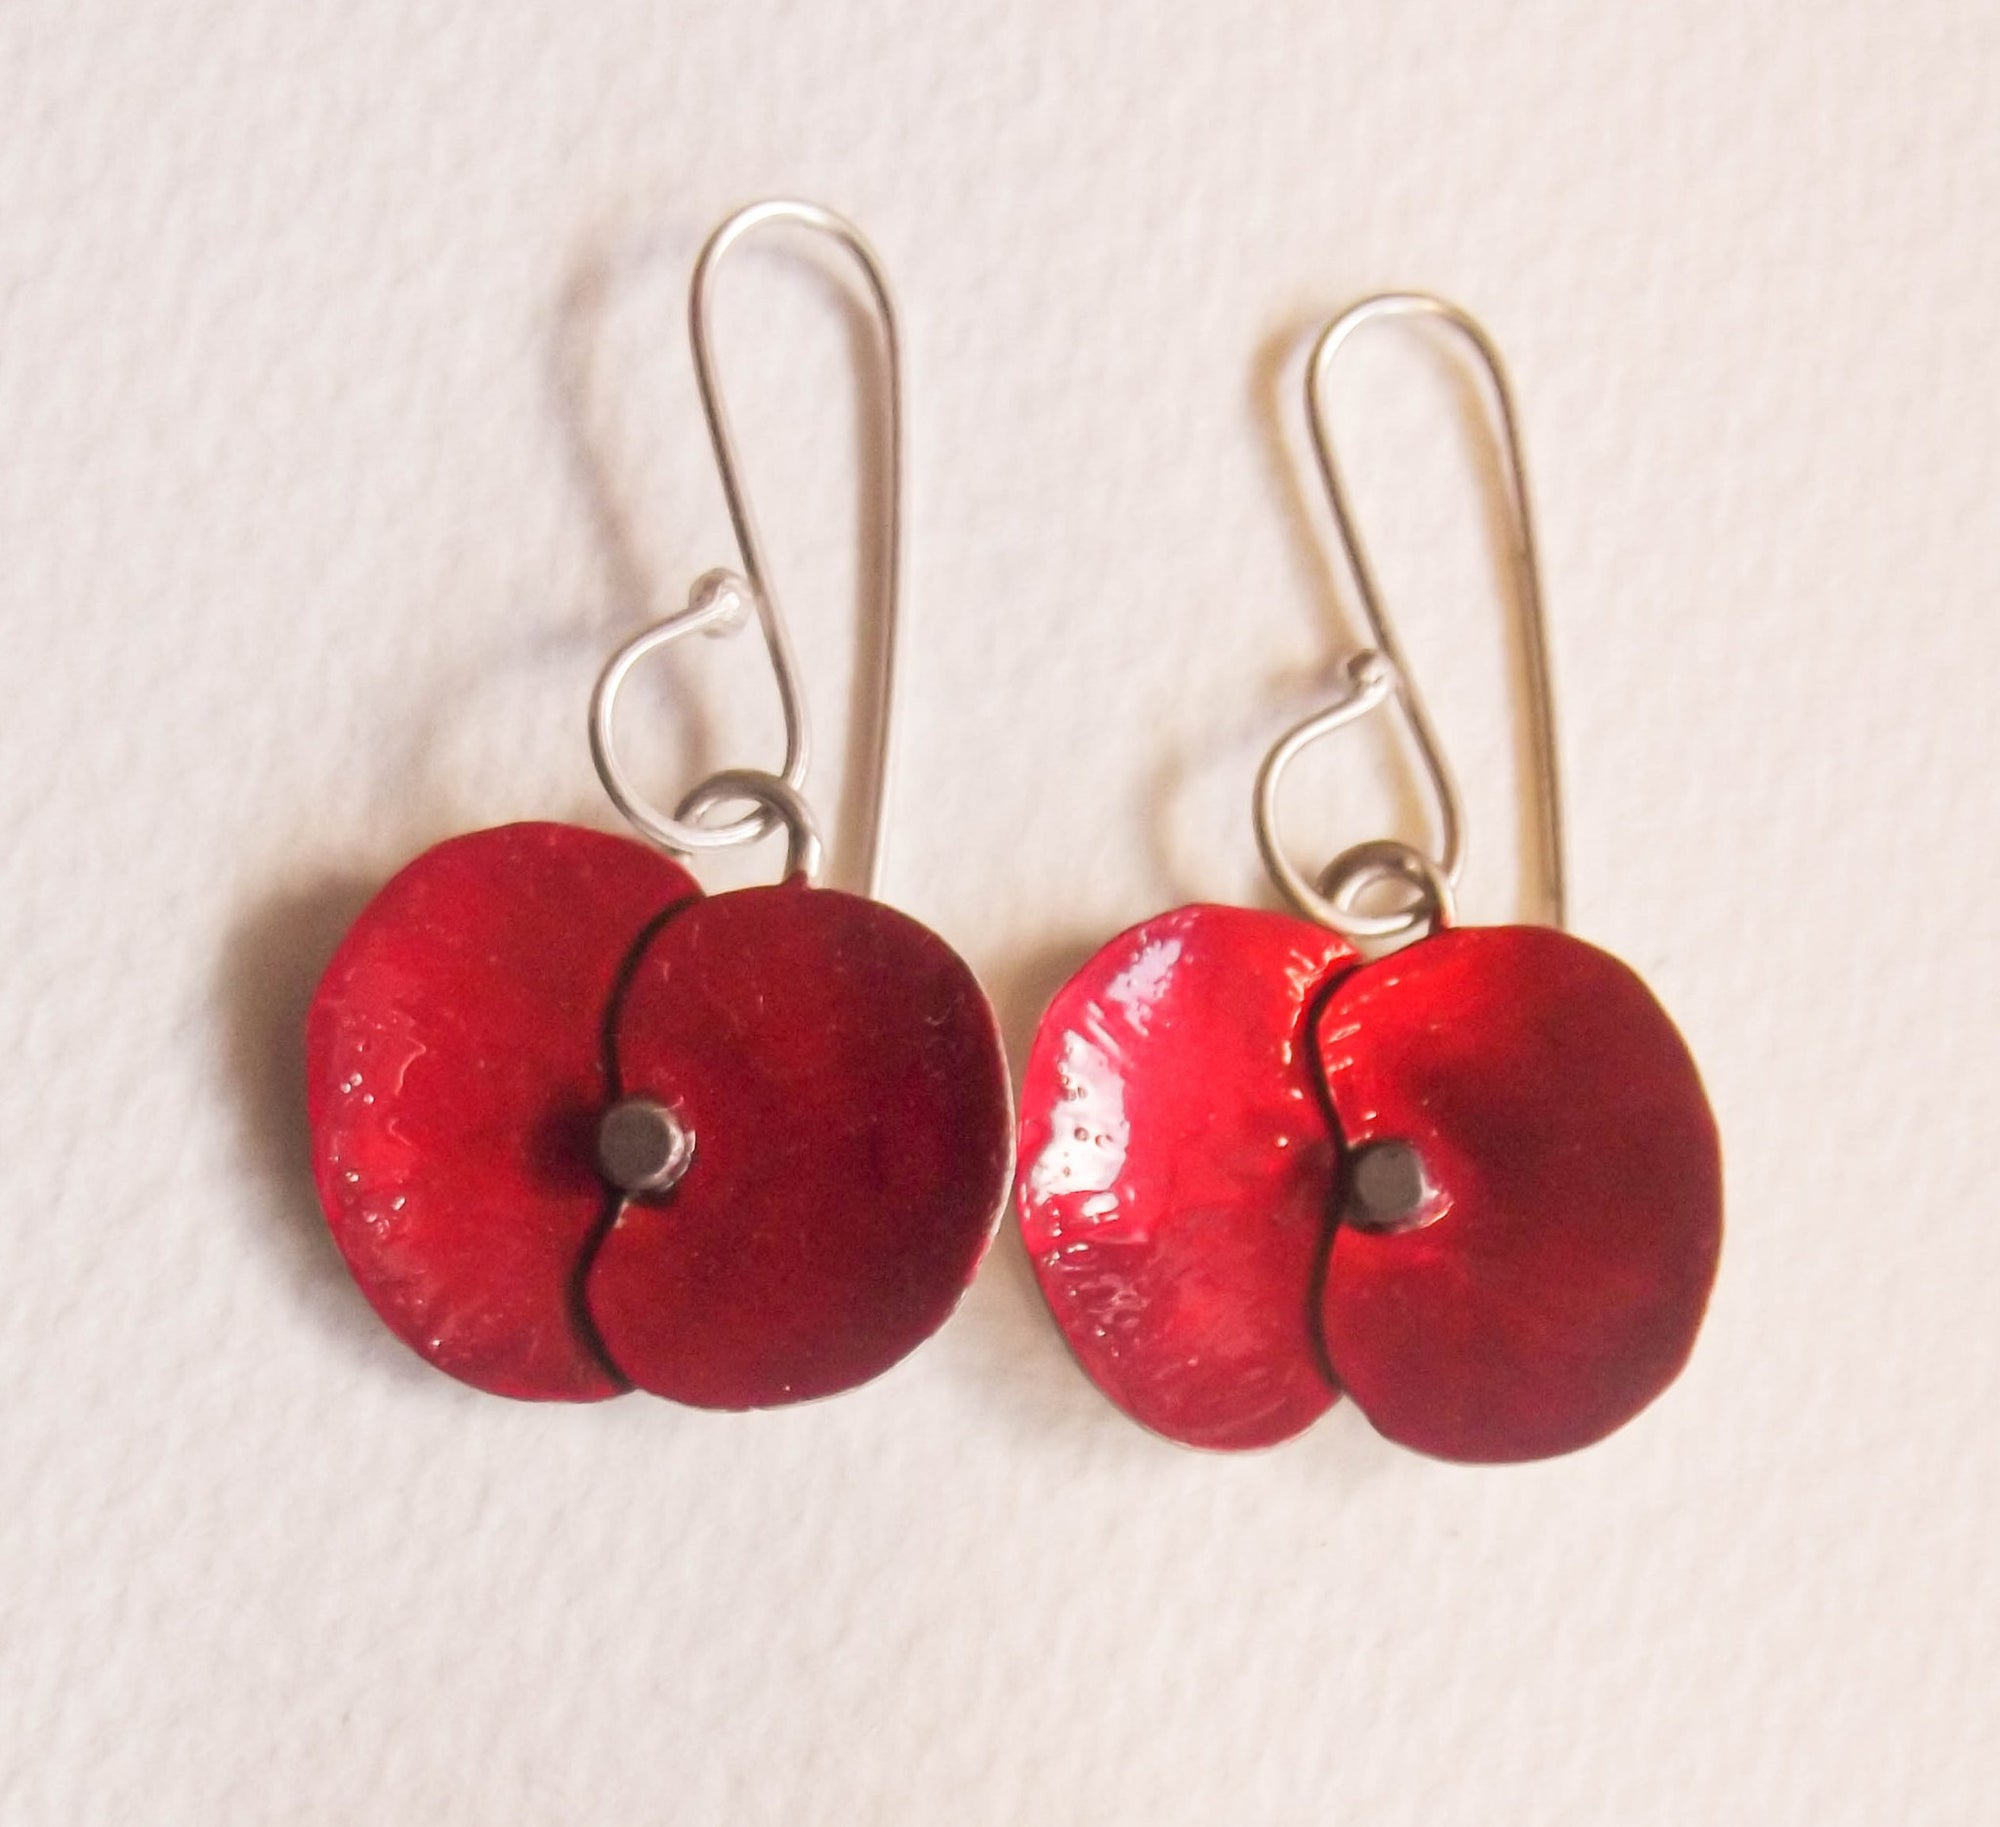 Poppy Earrings: Diane Connal